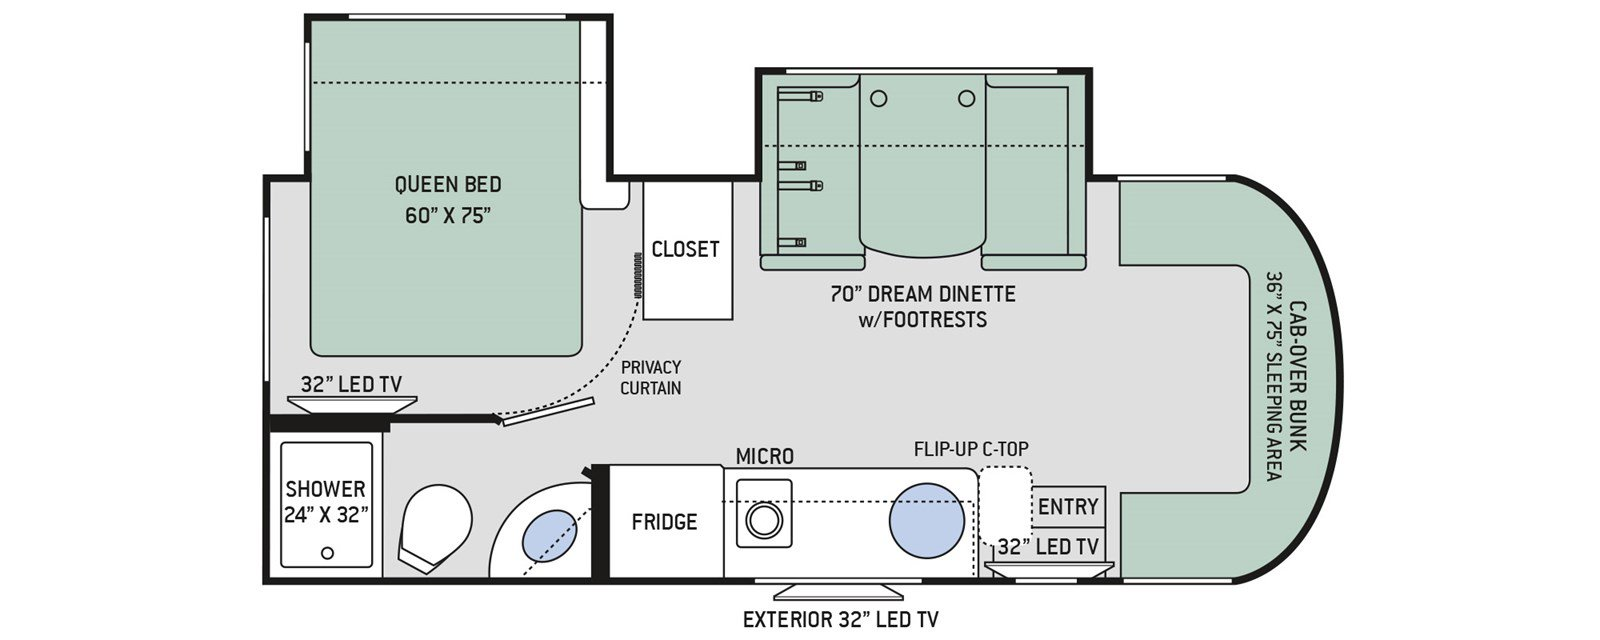 2018_thor_motor_coach_synergy_floorplan